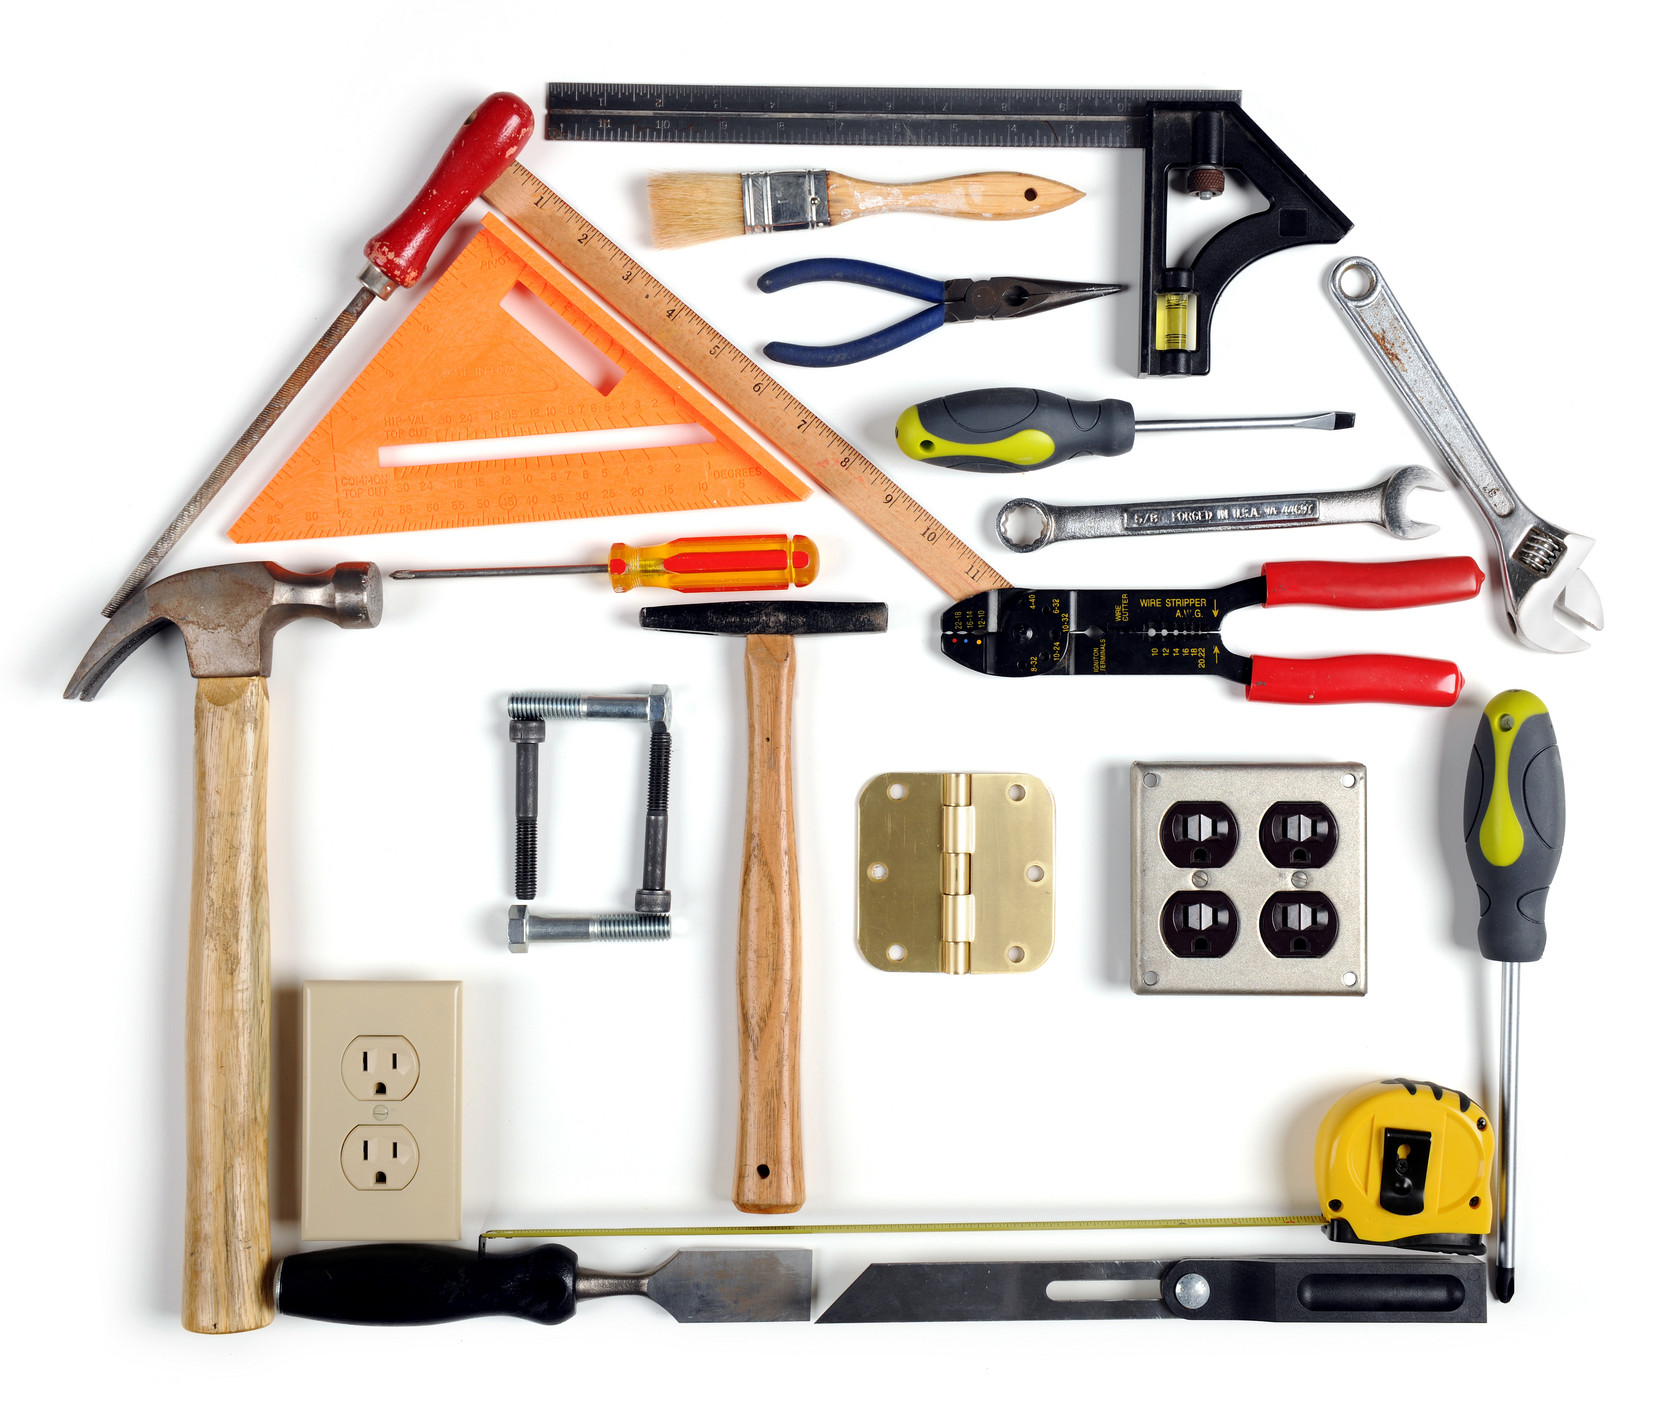 Top 10 Inexpensive Home Improvement Tips To Increase Value